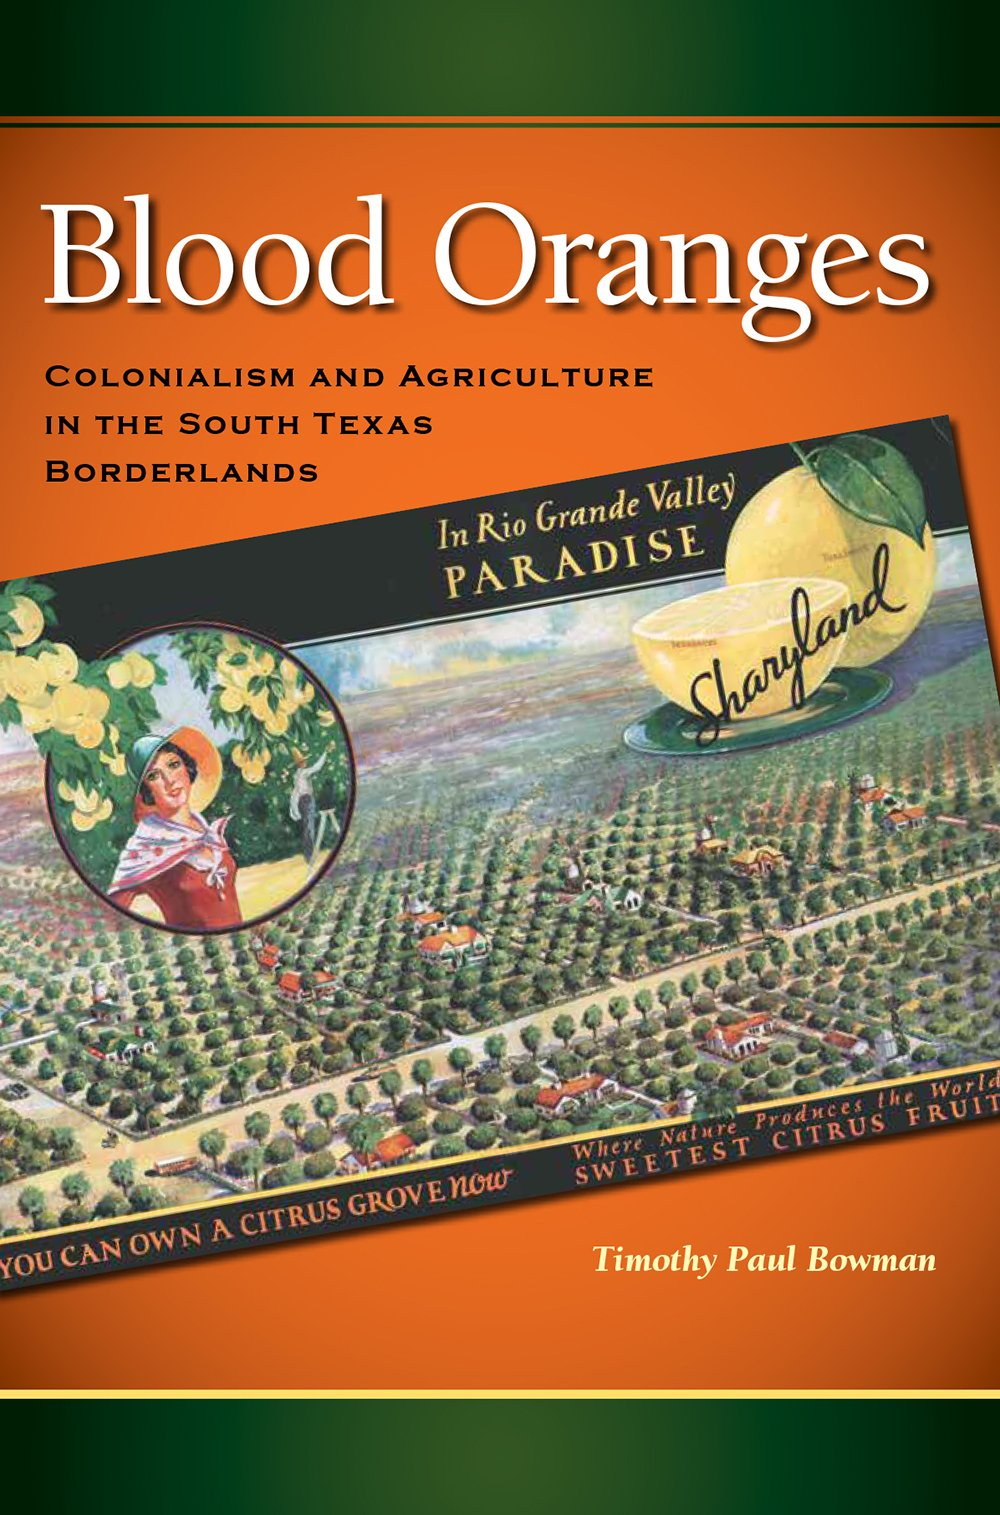 Blood Oranges: Colonialism and Agriculture in the South Texas Borderlands (Connecting the Greater West Series) ebook